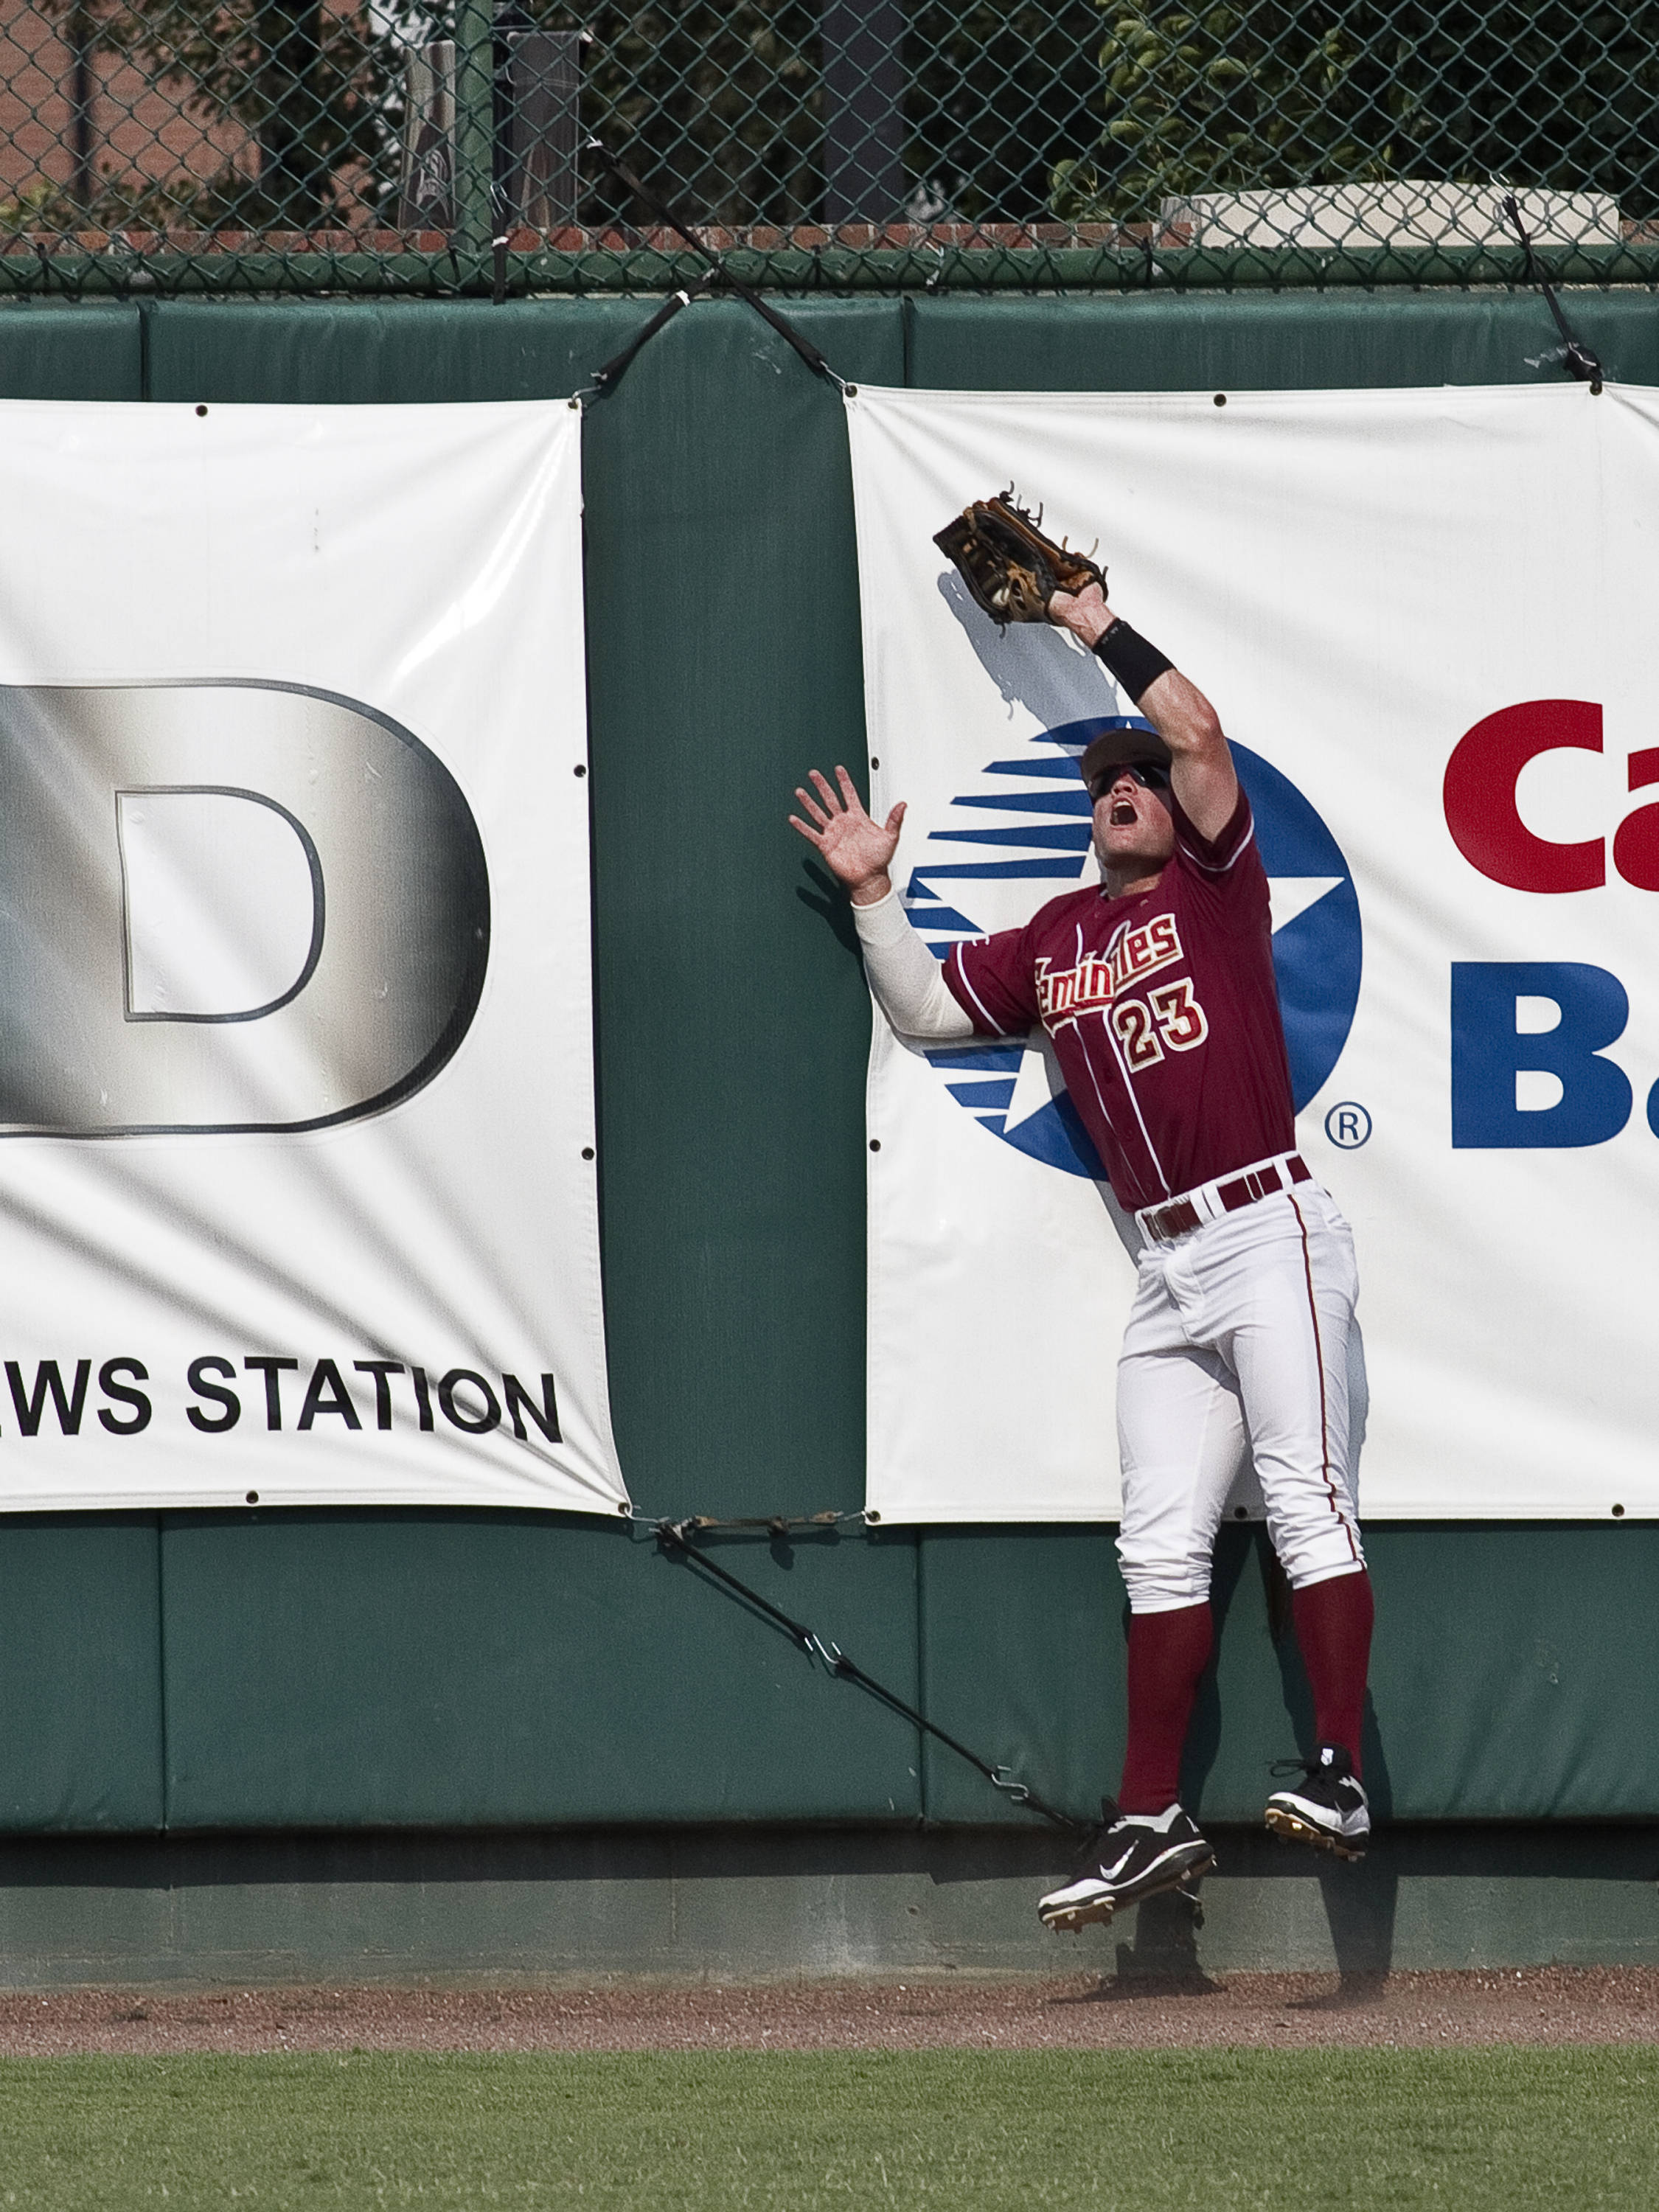 Outfielder James Ramsey (23) going up against the wall  to make a catch